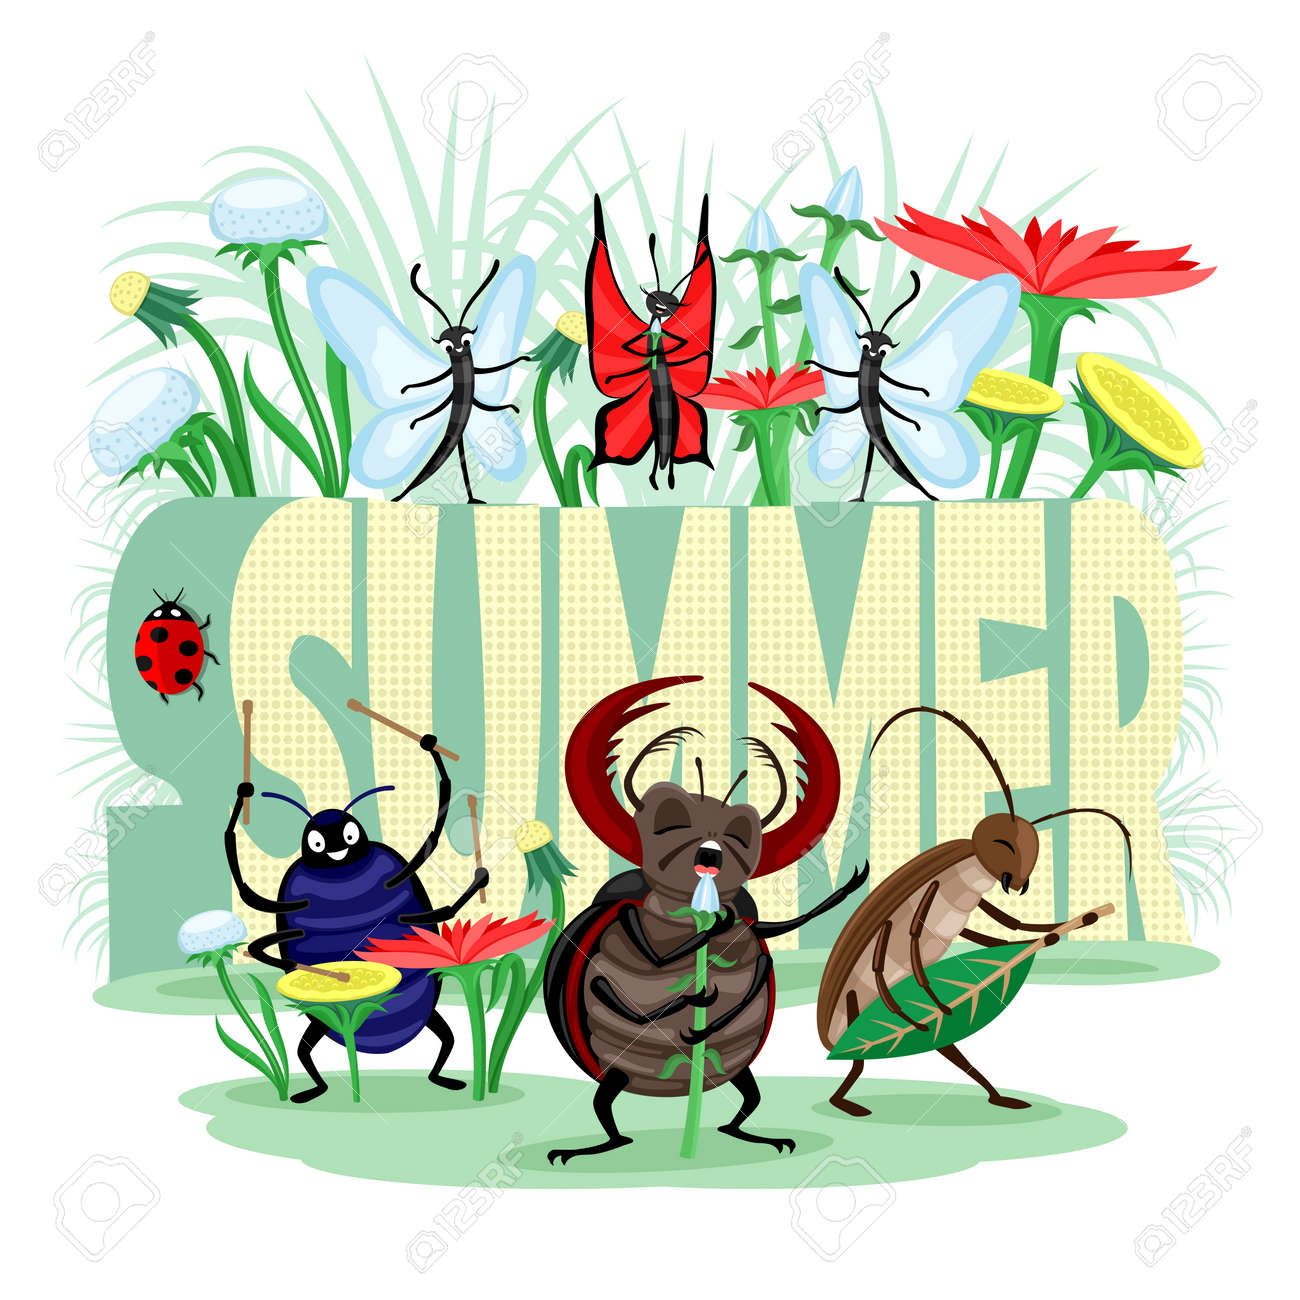 Summer illustration with musical group of insects beetles and butterflies on white background. - 168969127